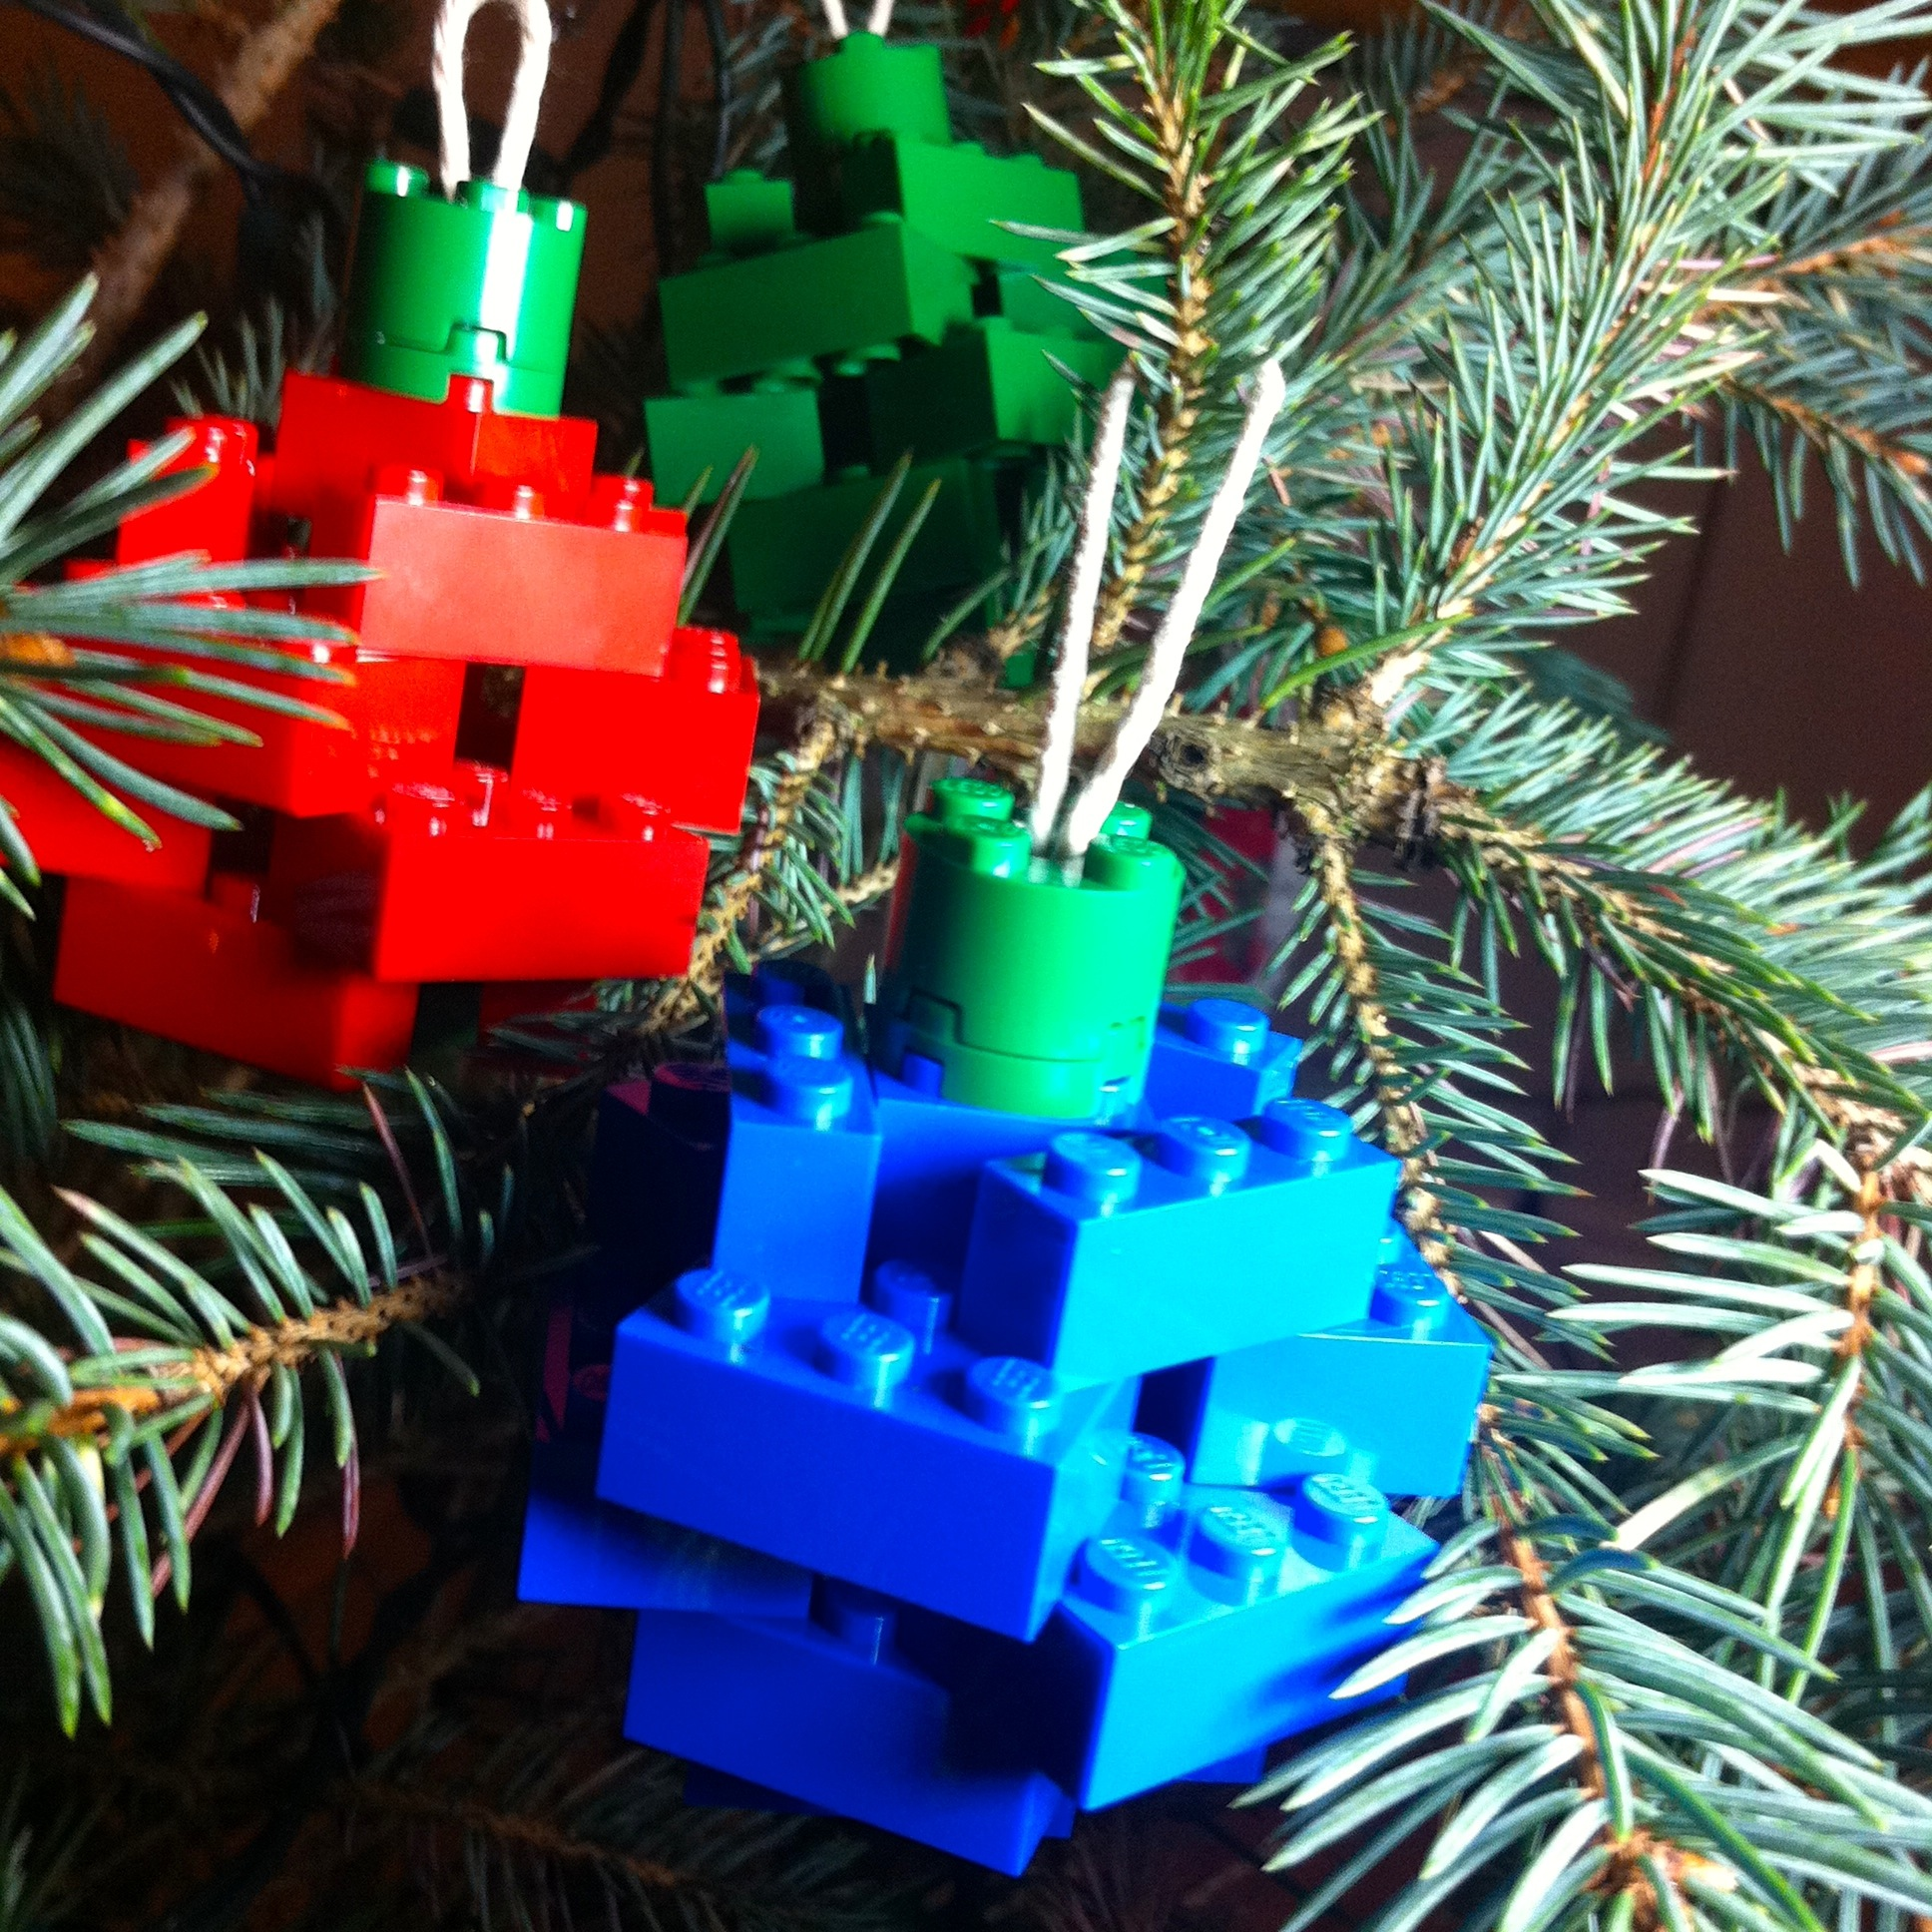 Simple Lego Christmas Ornaments Robert Peake By Robert Peake